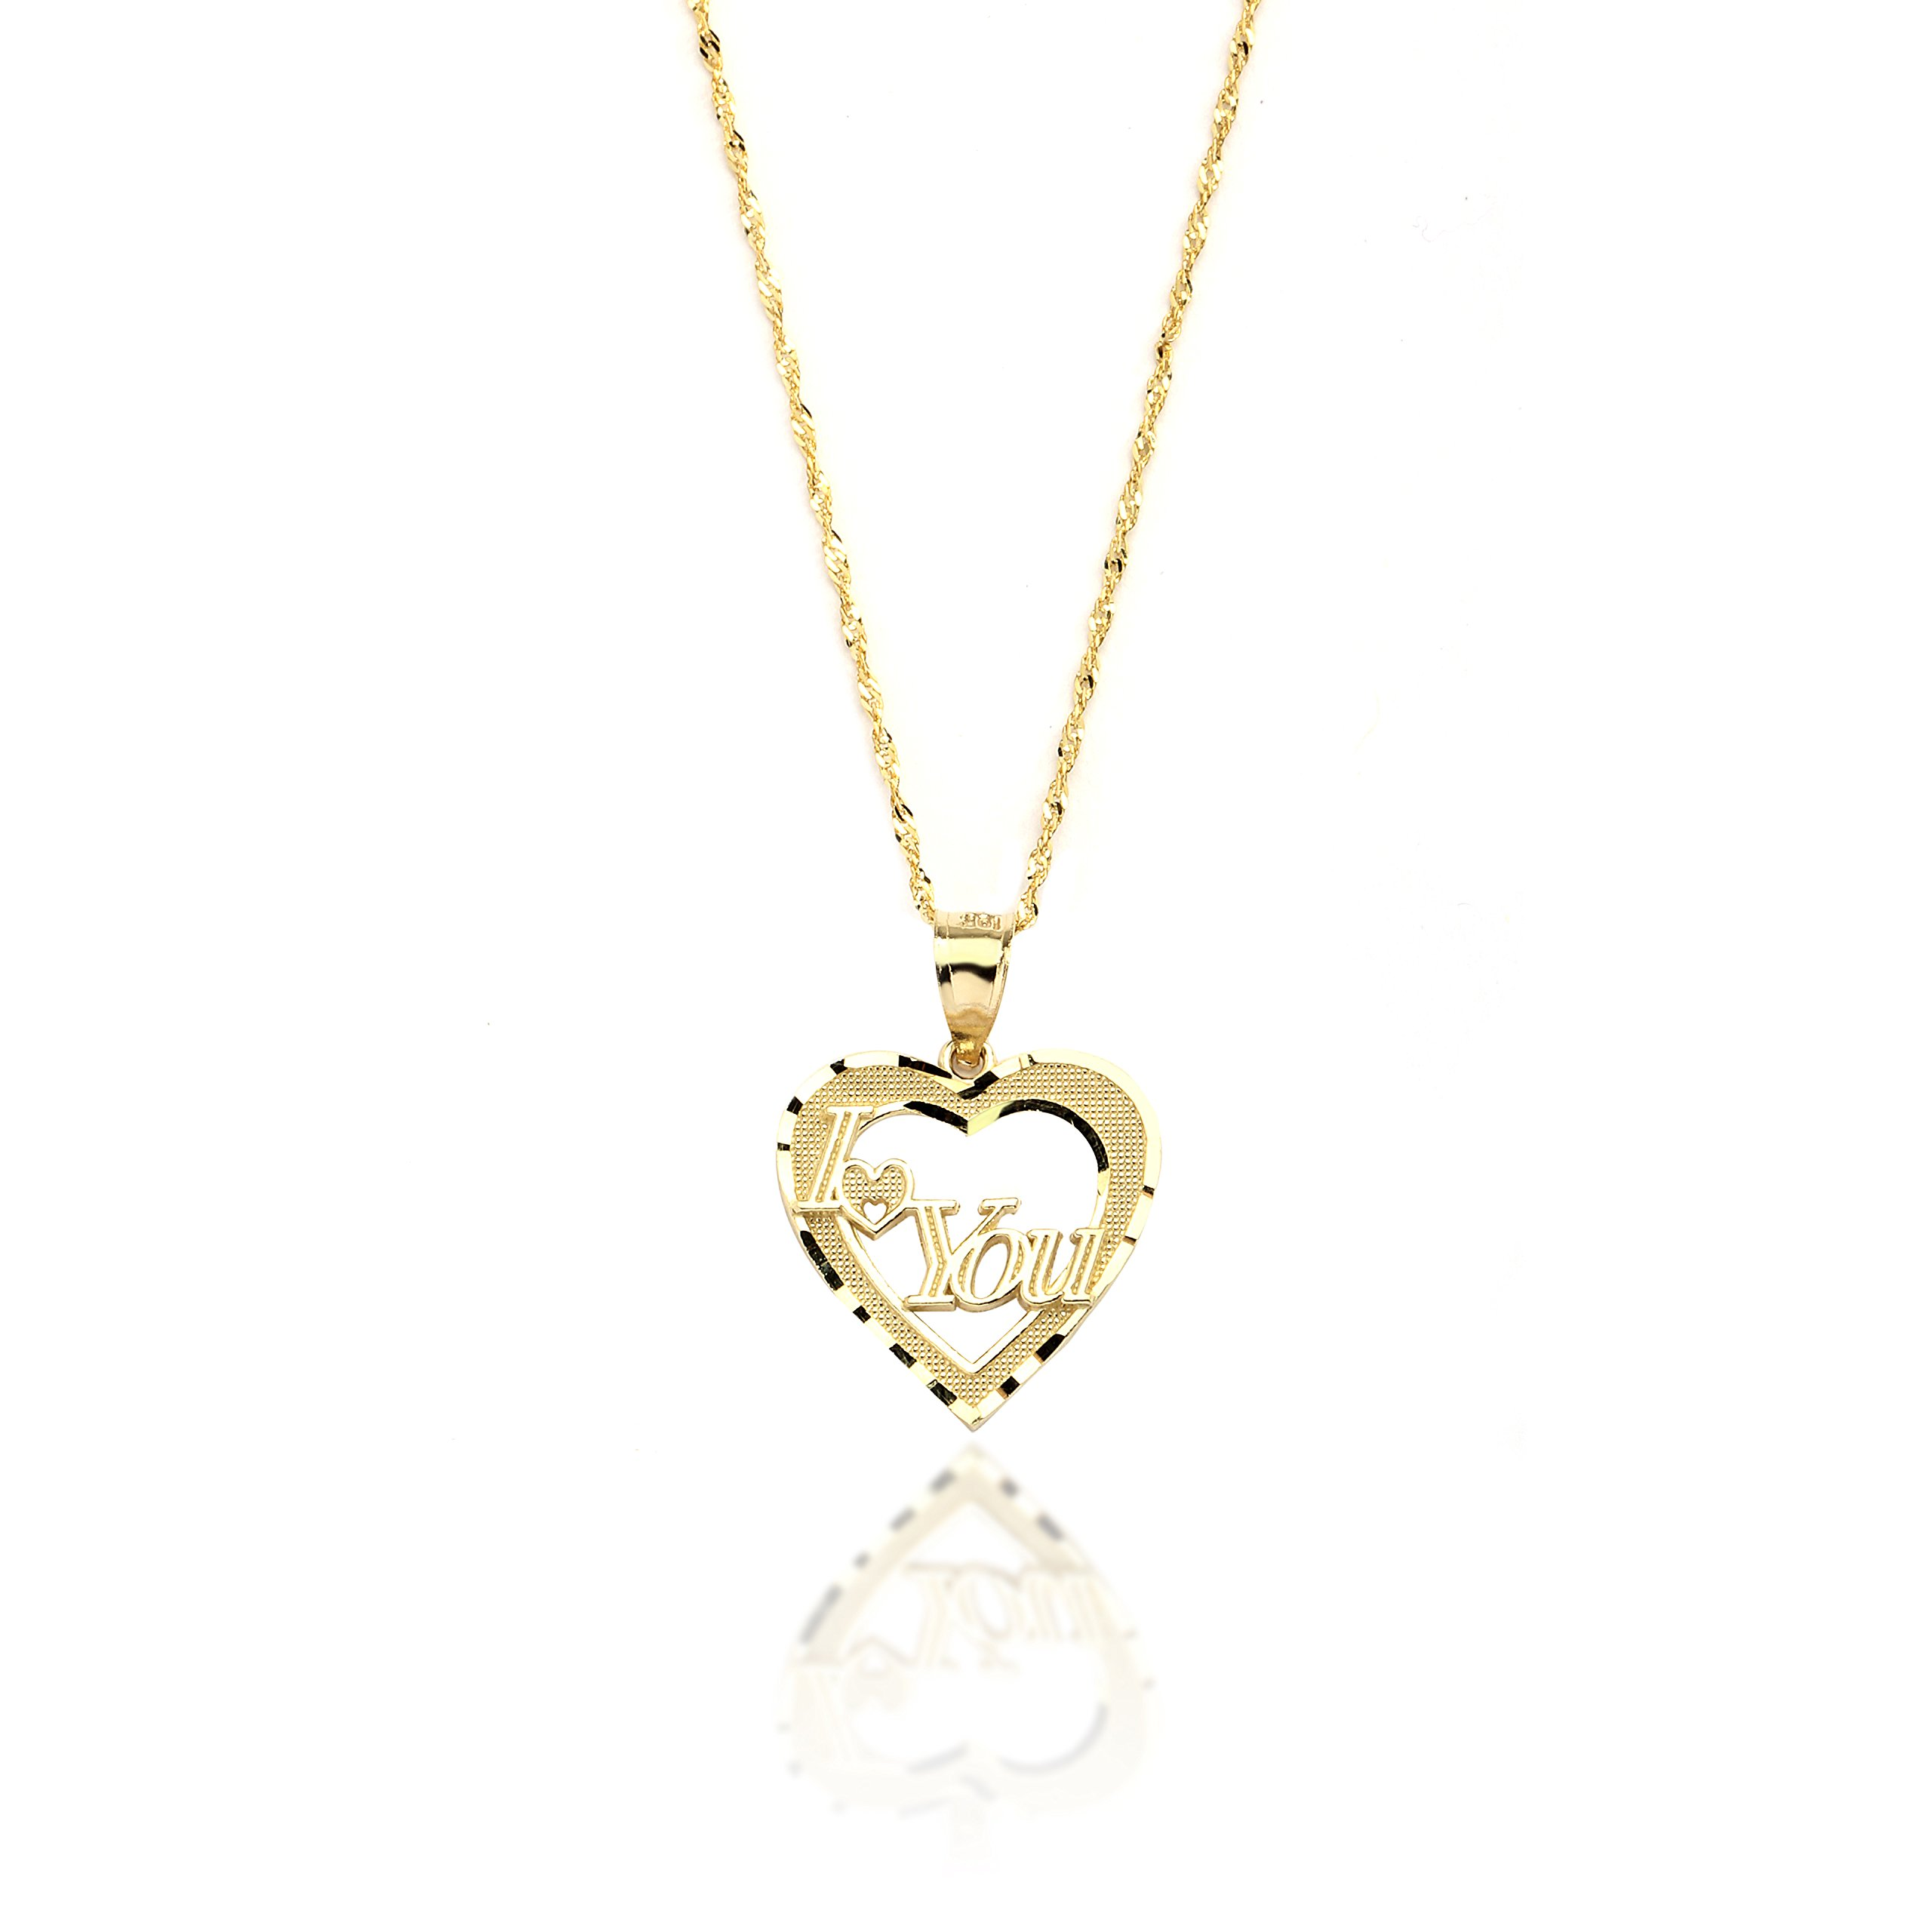 18'' 10k Yellow Gold I Love You Heart Charm Necklace with Singapore Chain for Women and Girls